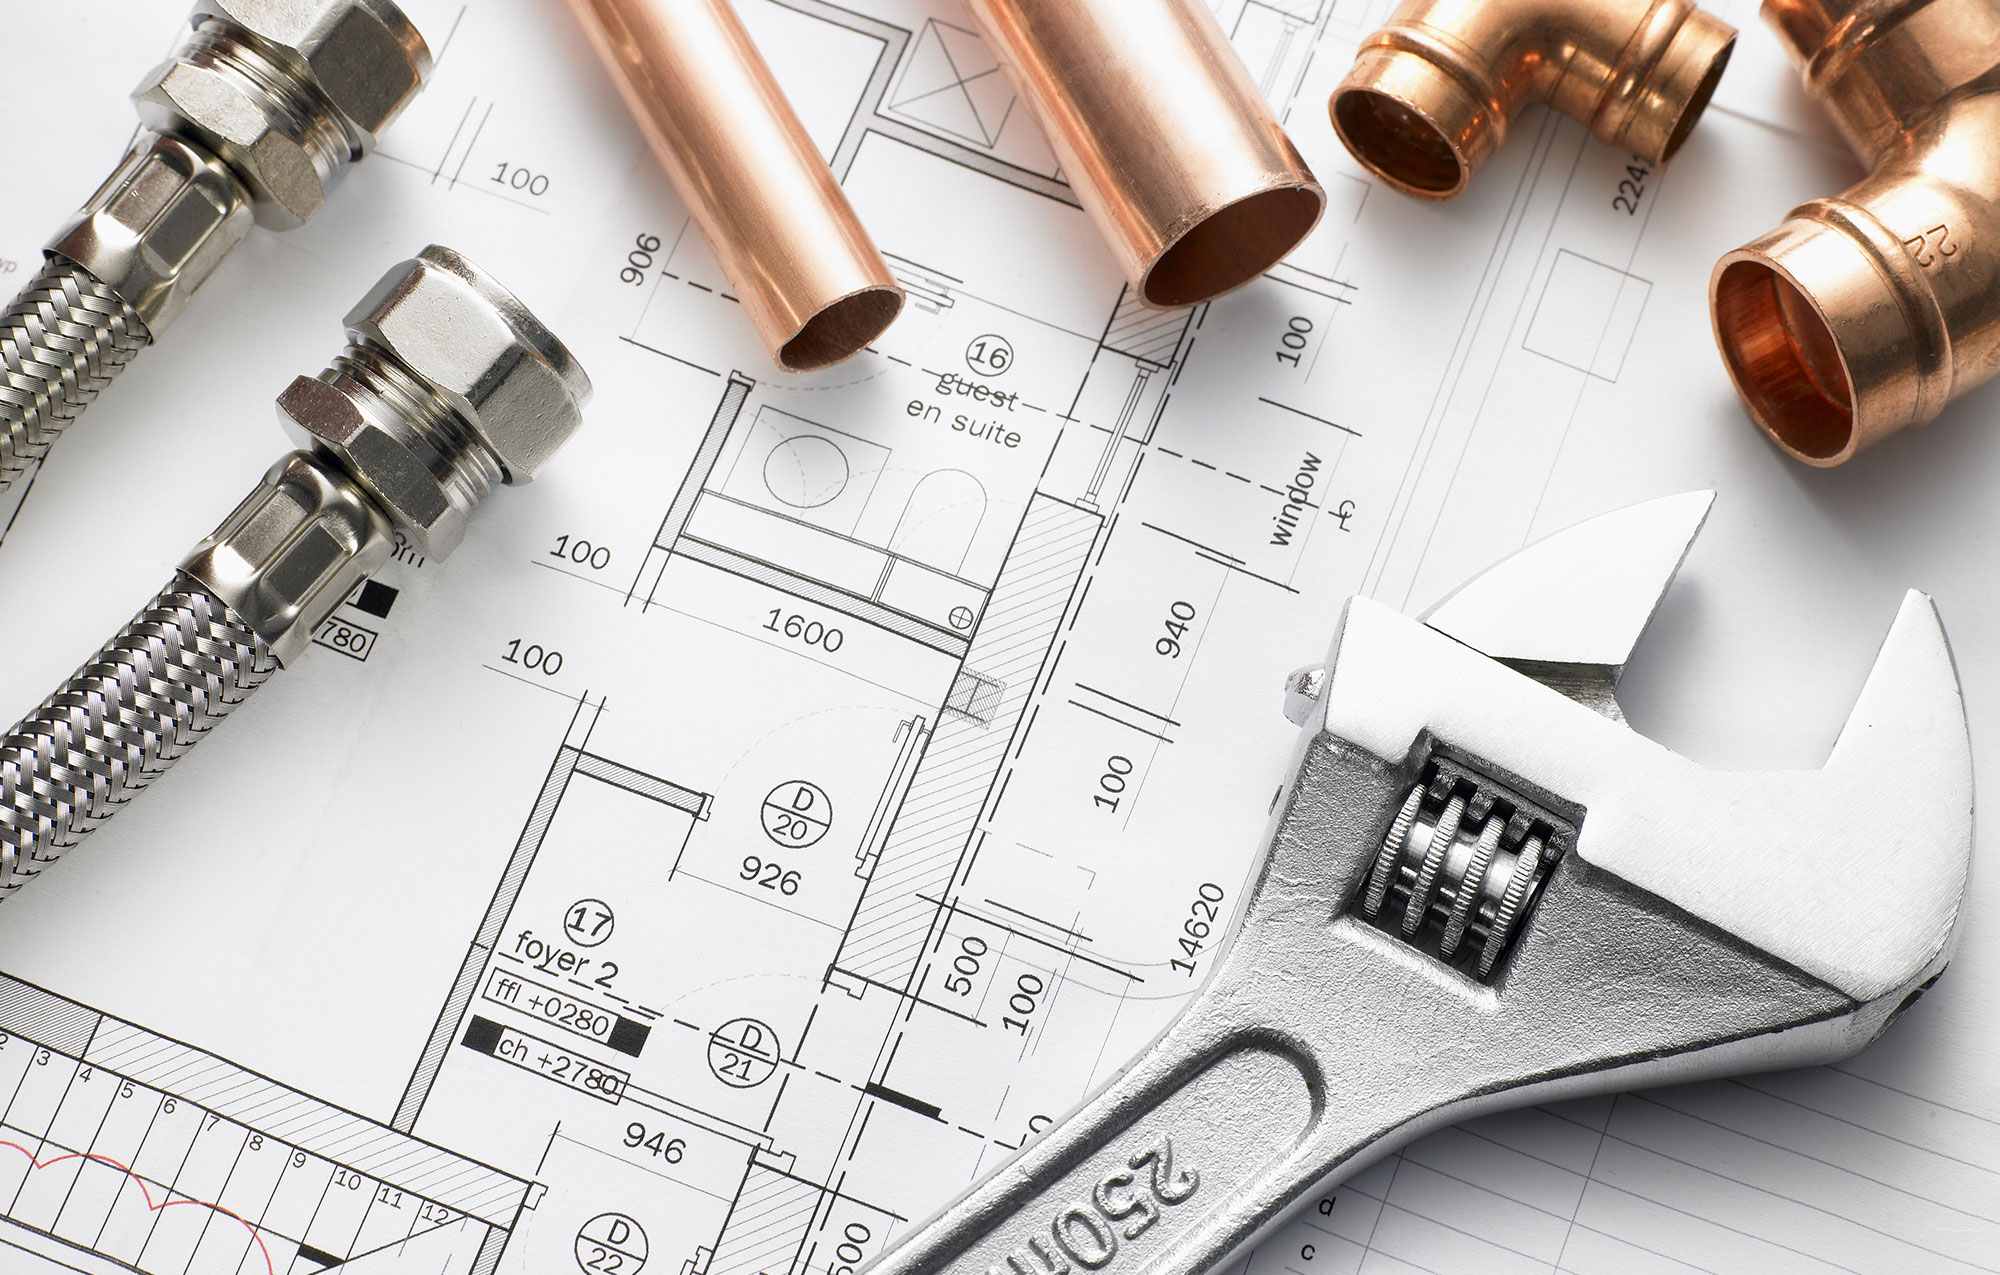 Copper Pipe, Wrench, and Plans